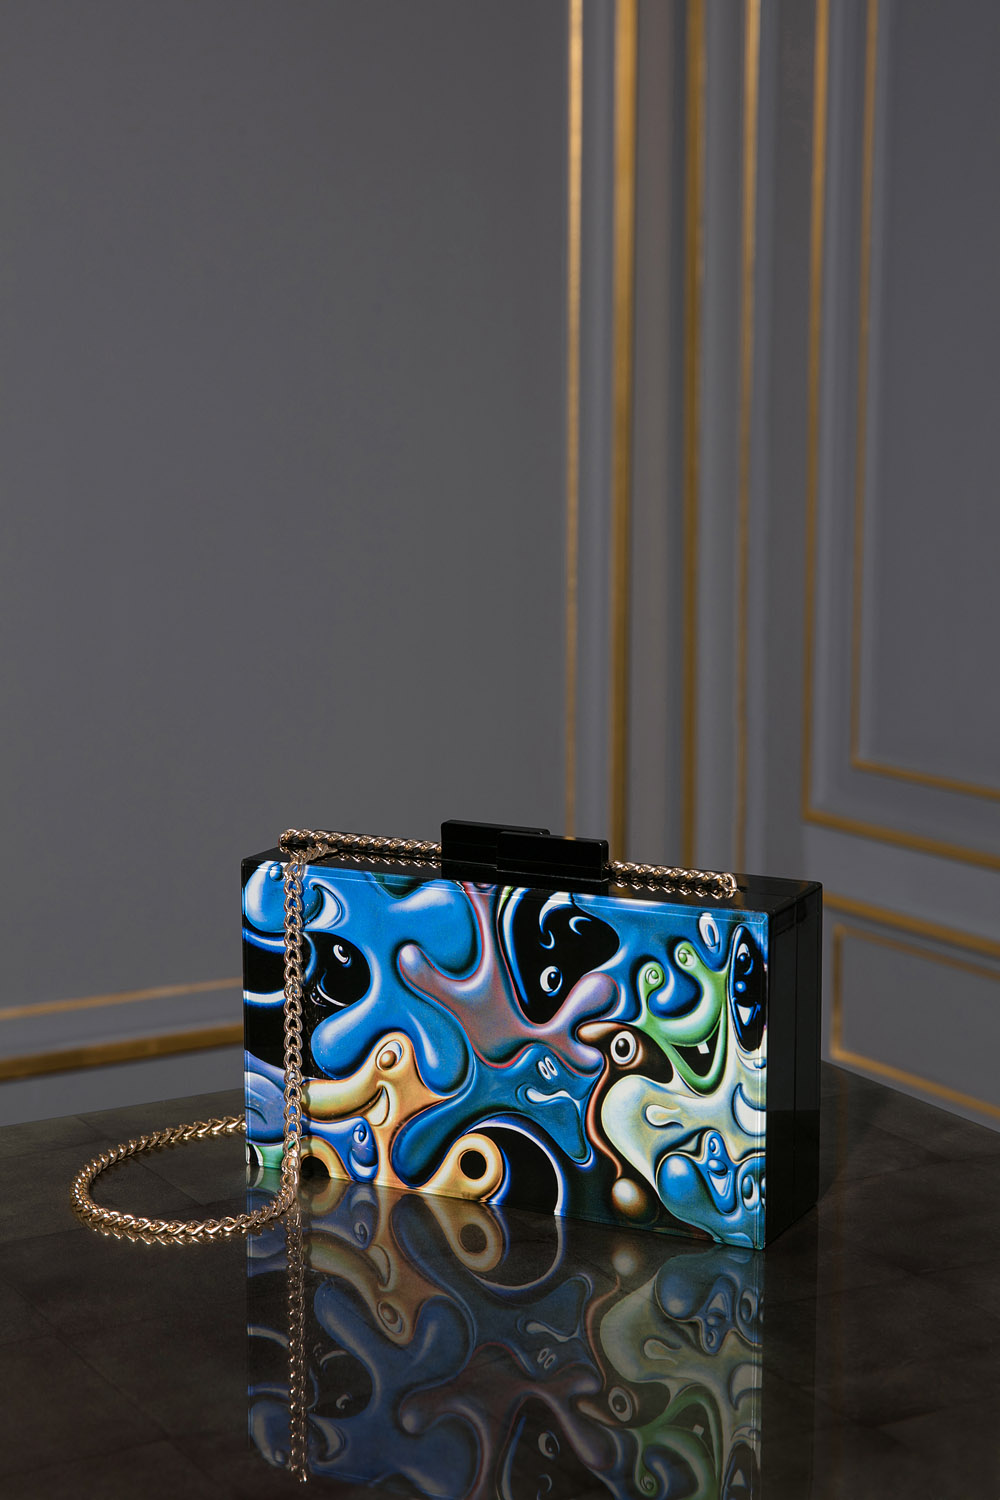 Acrylic clutch printed with art by Kenny Schauf